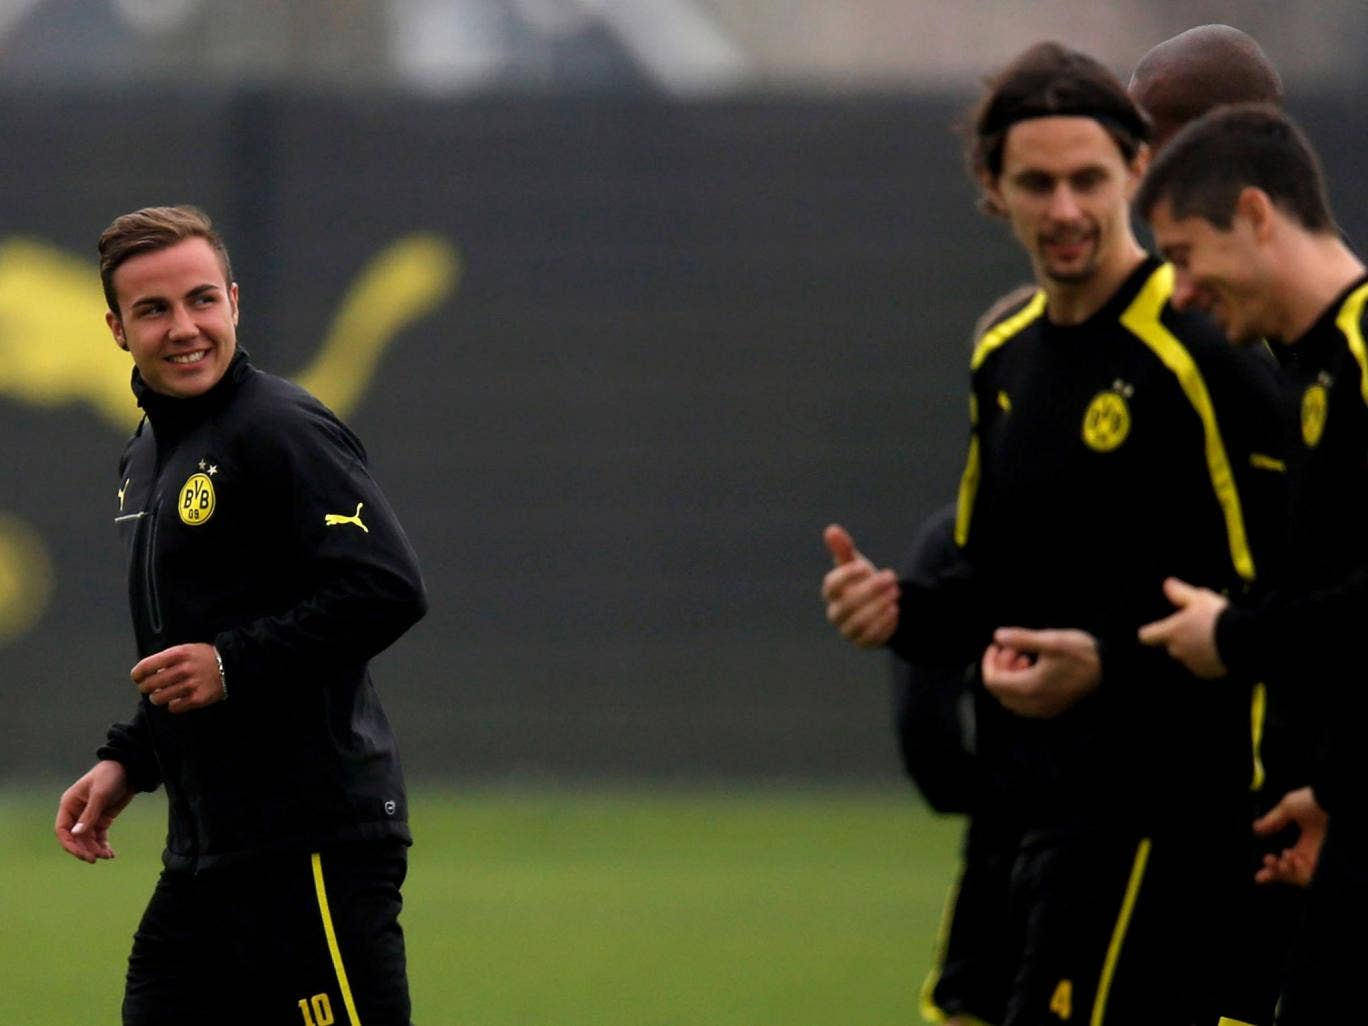 Mario Gotze trains with his team-mates ahead of the match with Real Madrid